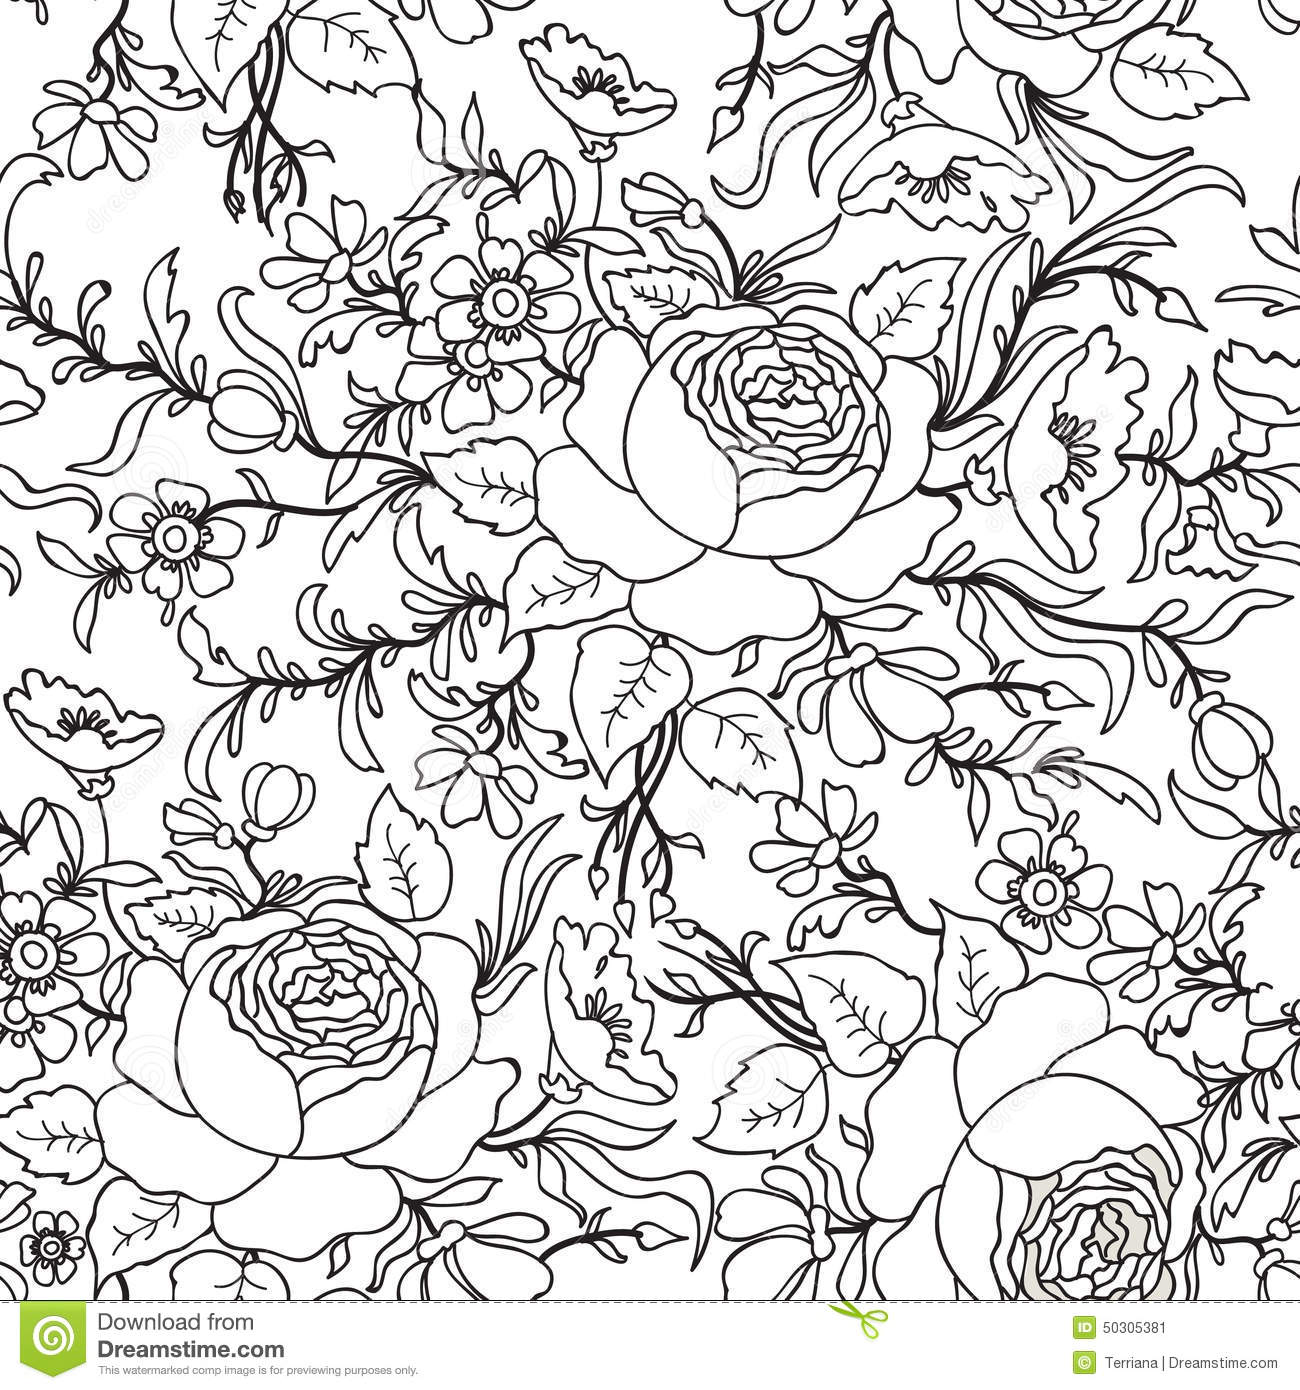 Floral Seamless Pattern. Flower Outline Sketch Background. Stock Image - Image 50305381